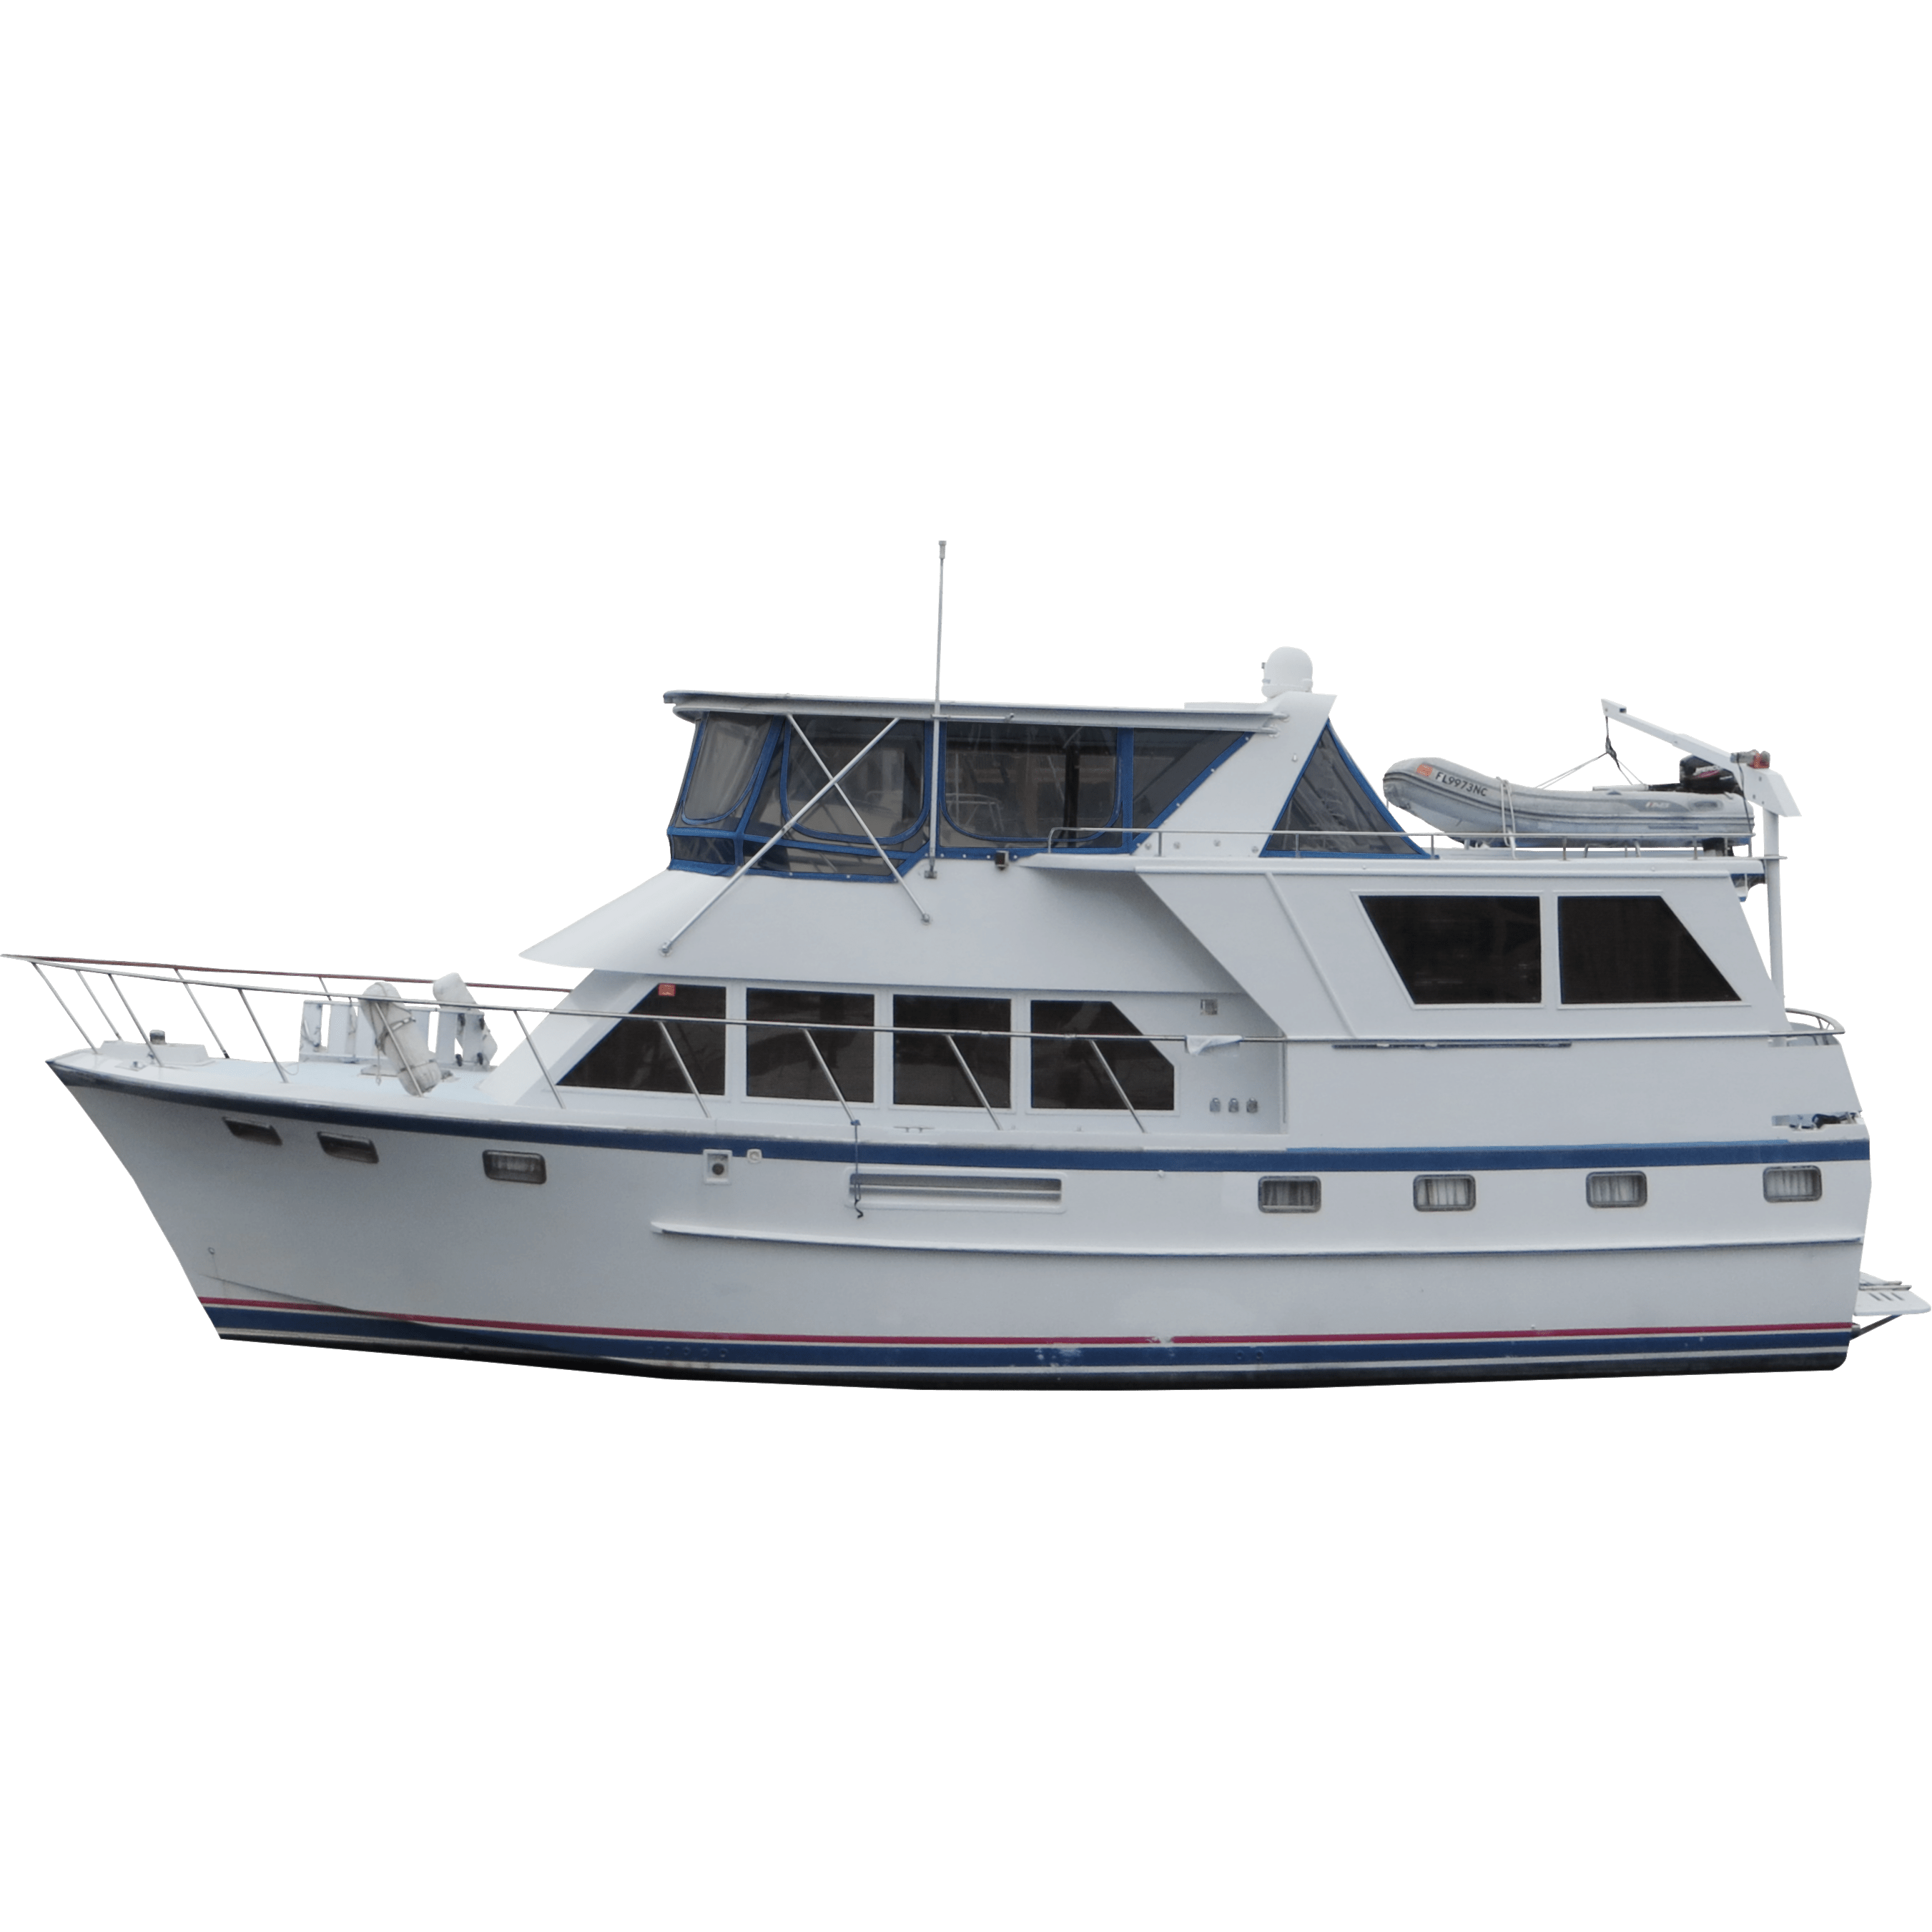 graphic royalty free Yacht clipart transportation. Boat ship png transparent